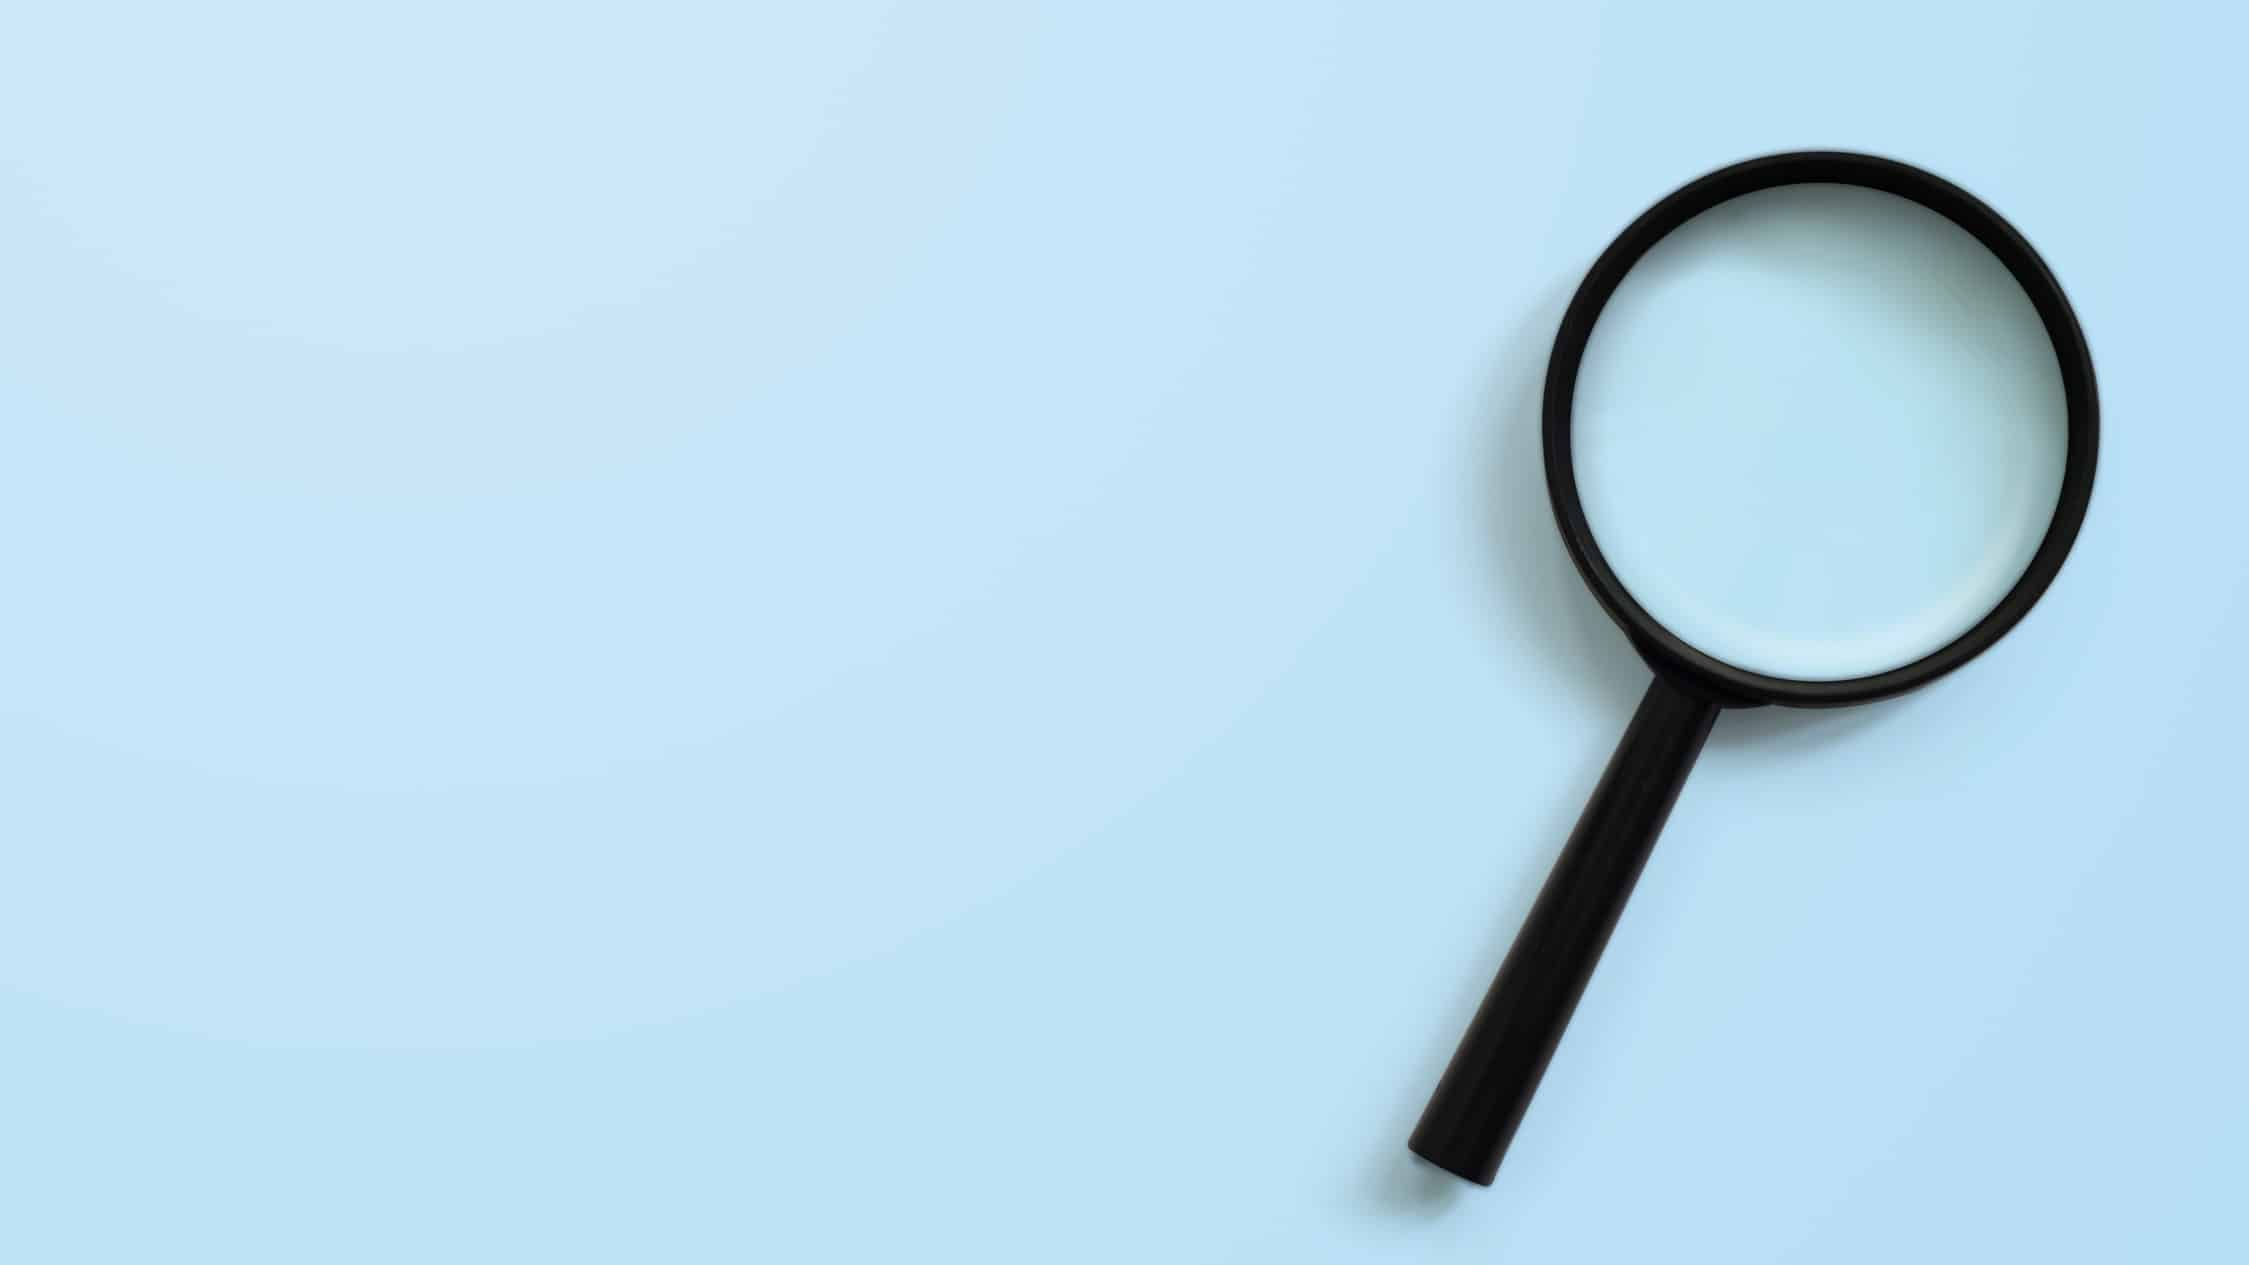 Magnifying glass on blue background symbolising searching for ASX shares